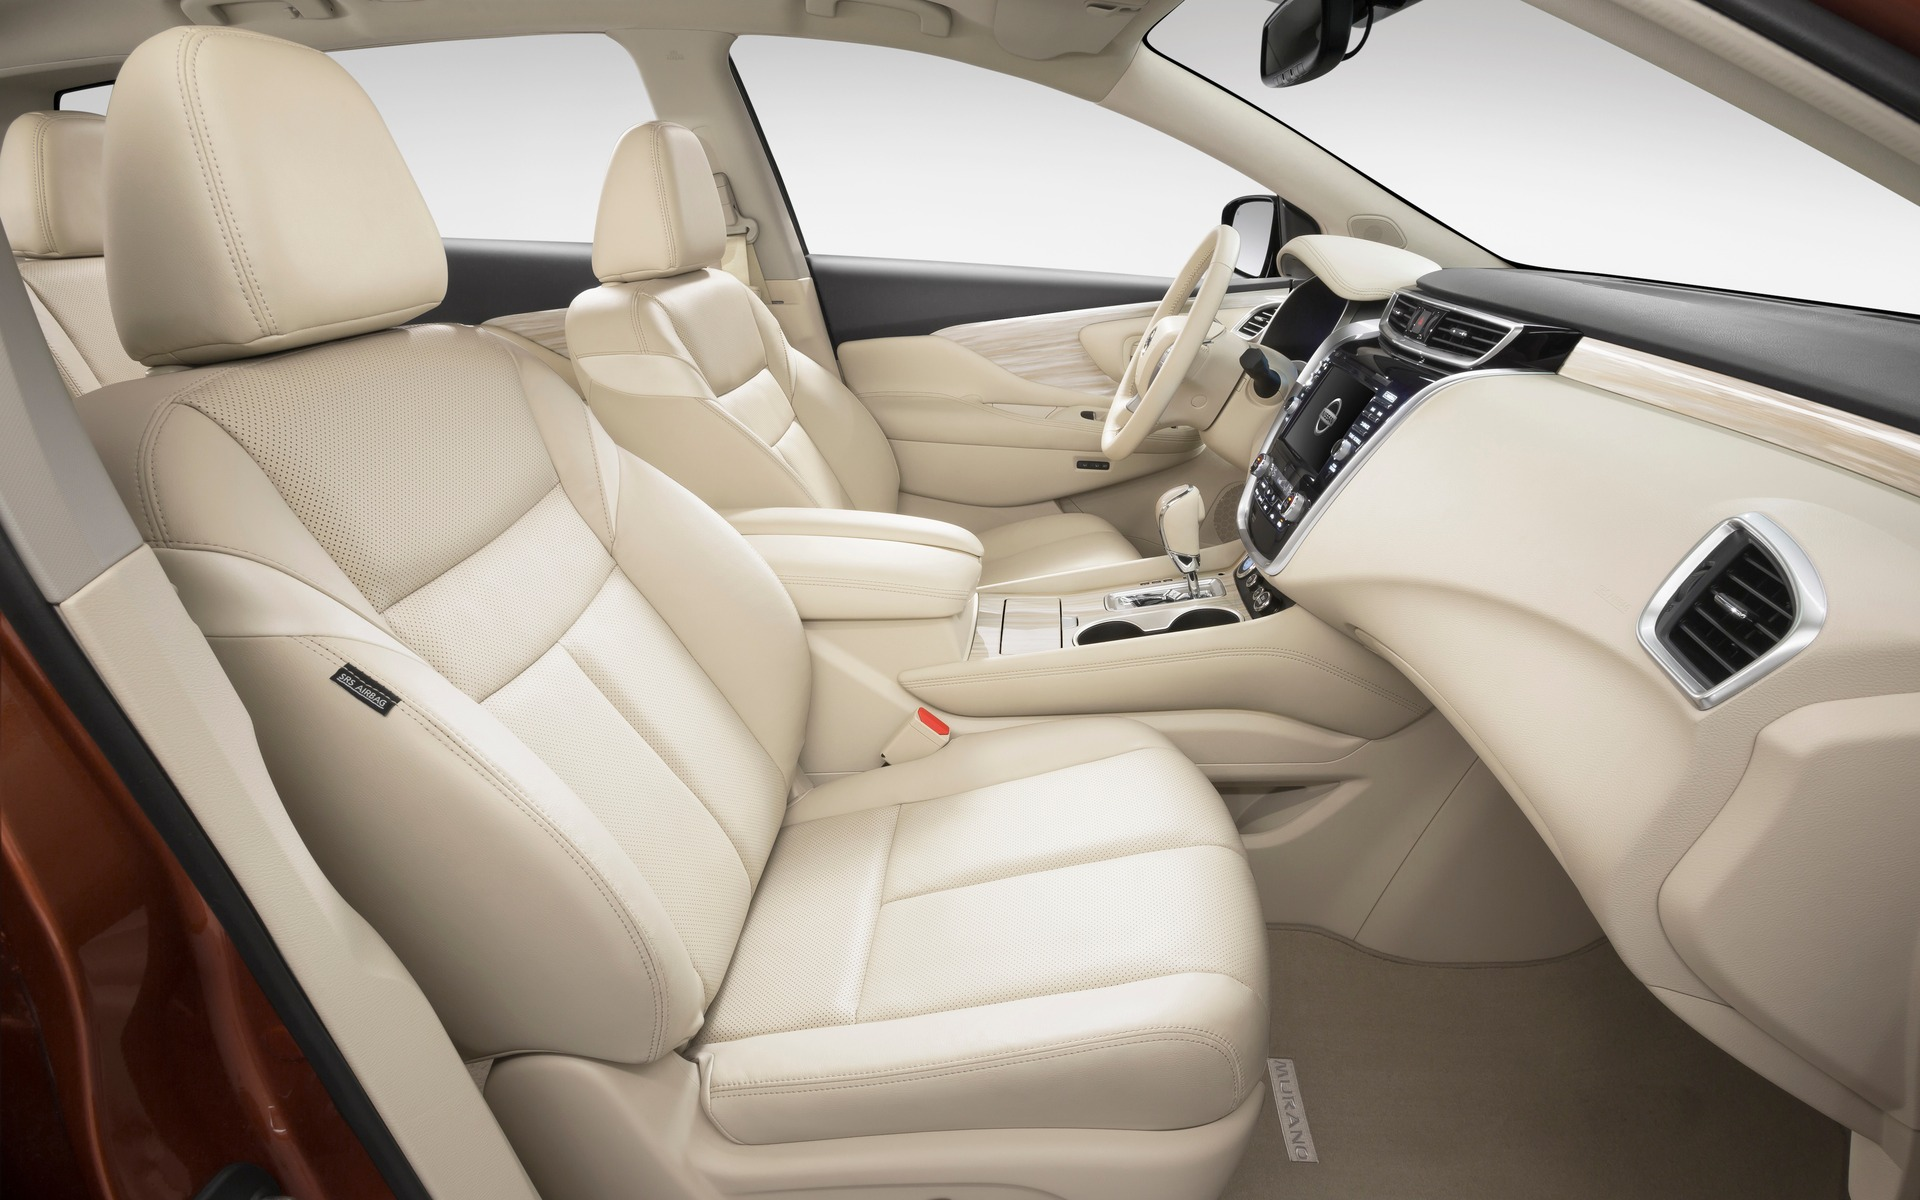 The leather used on the Nissan's seats was soft to the touch.